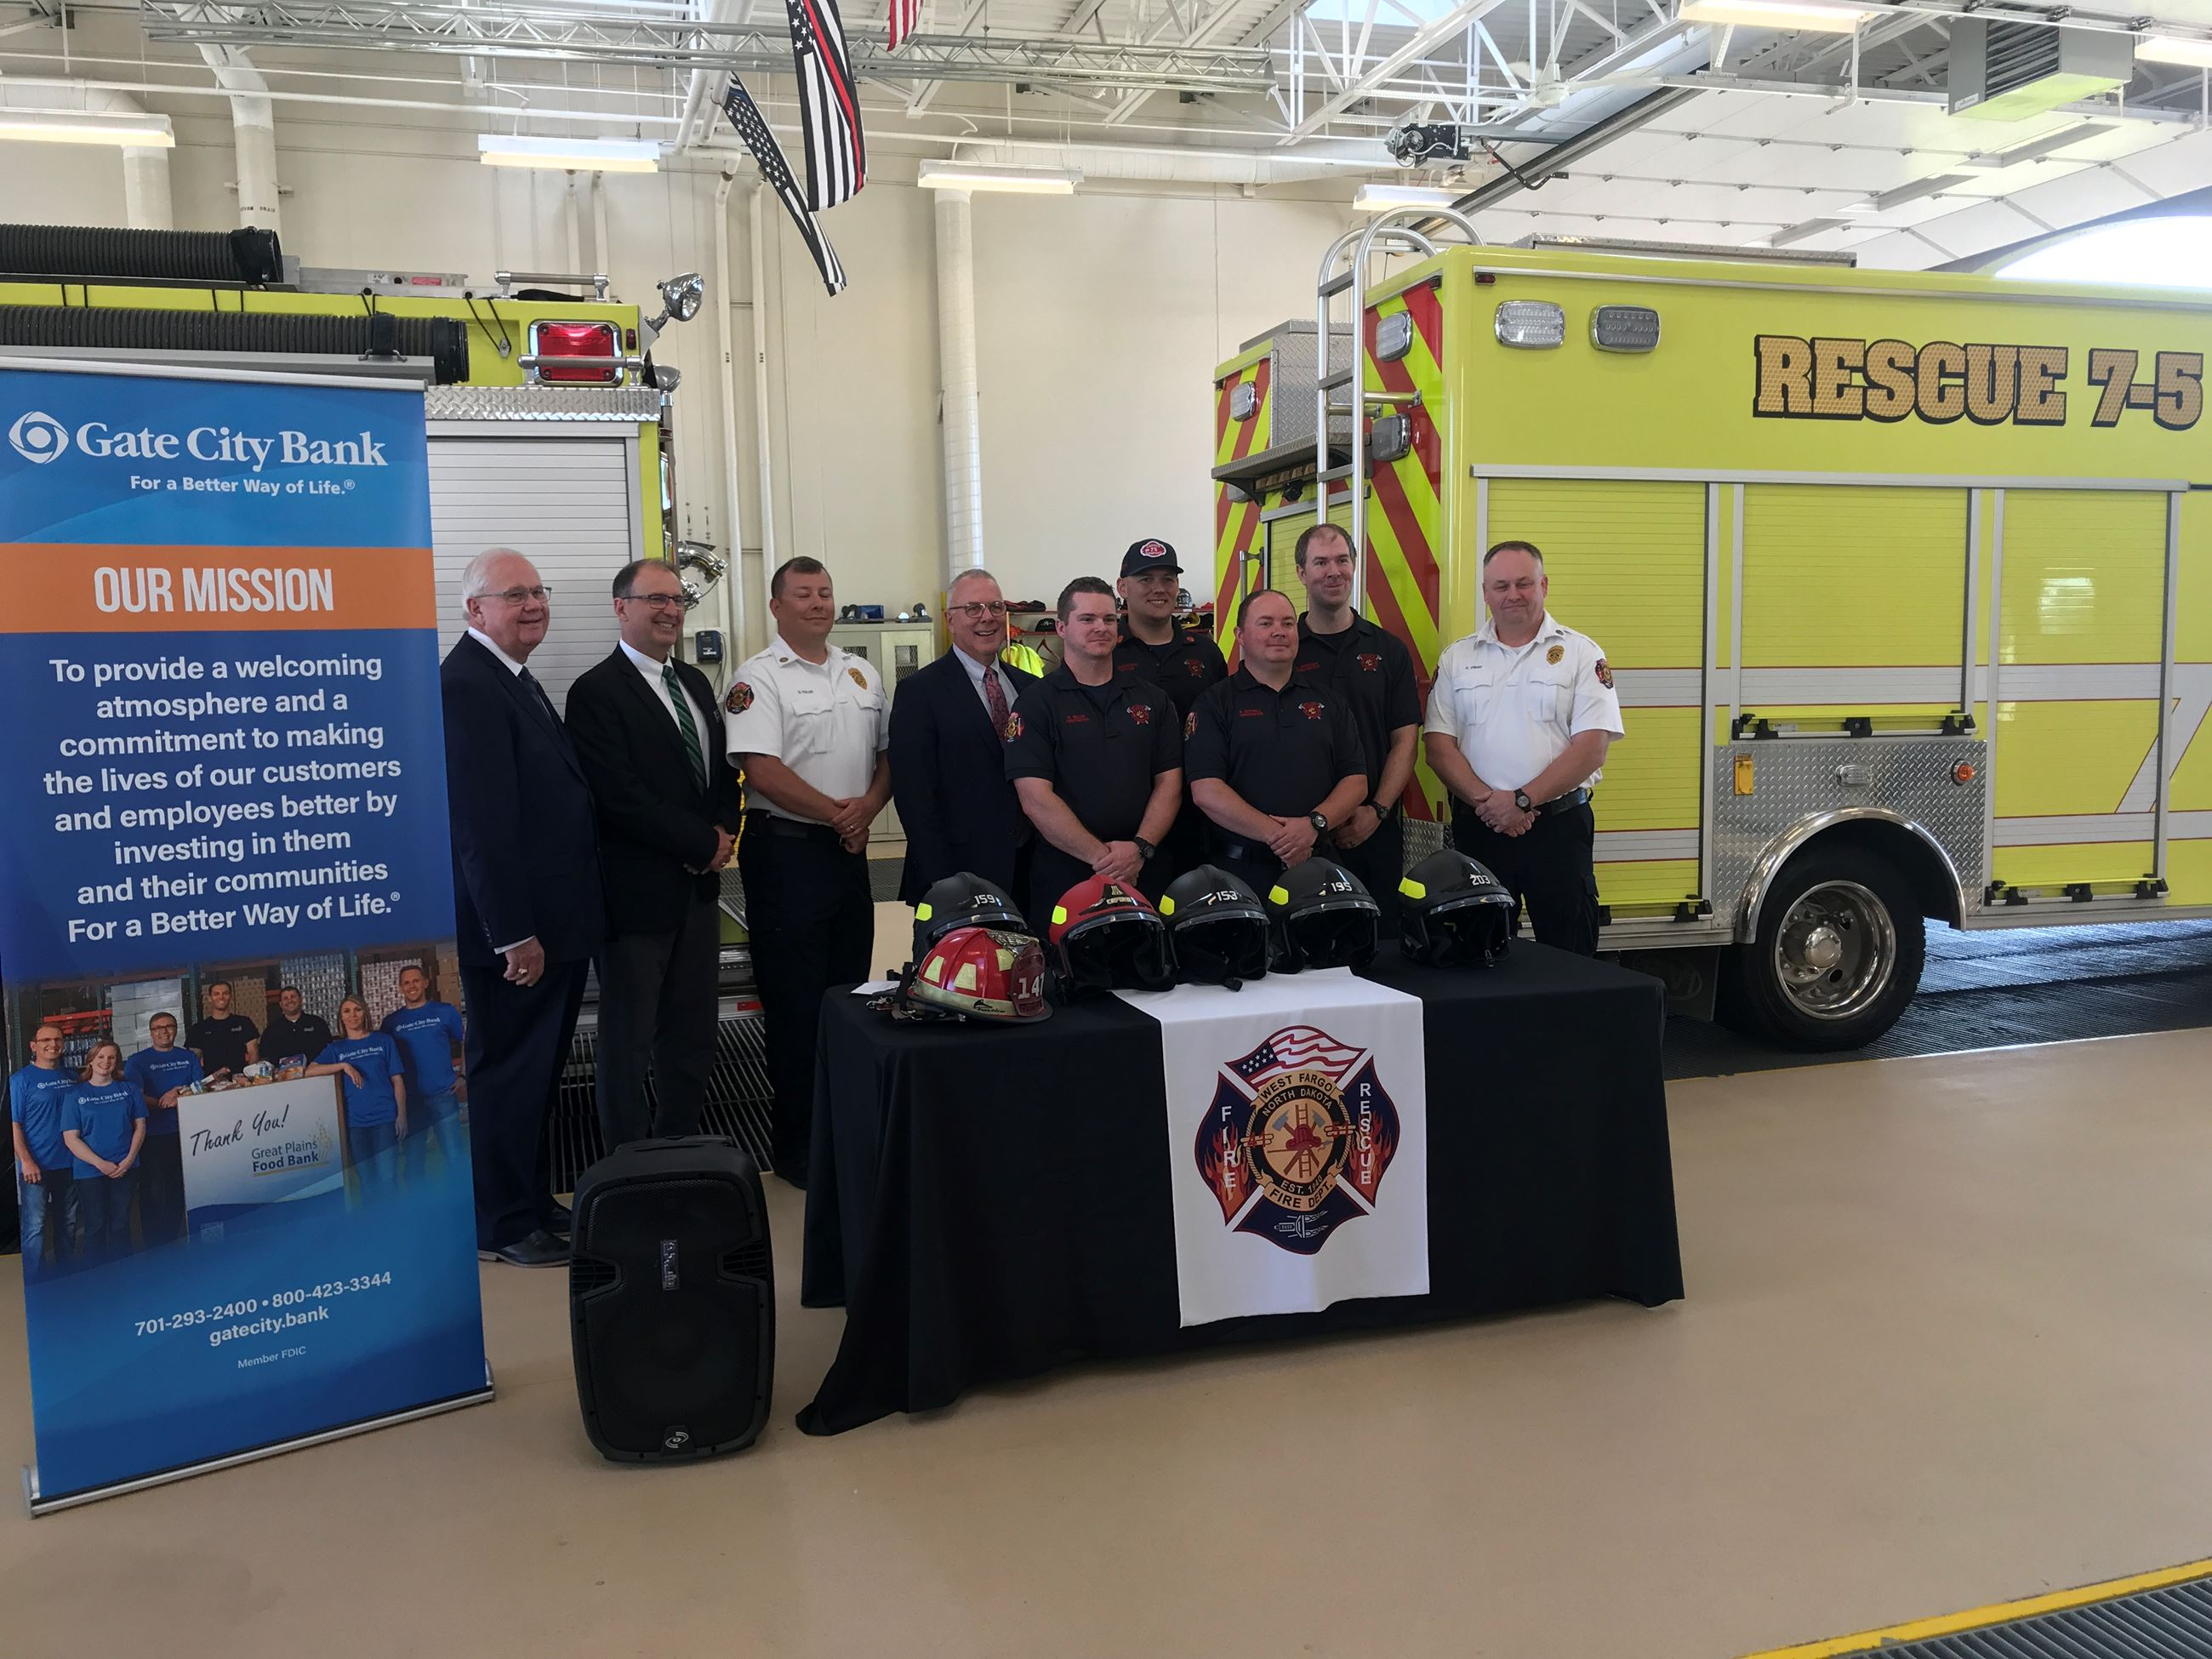 Gate City Bank and WFFD helmet announcement